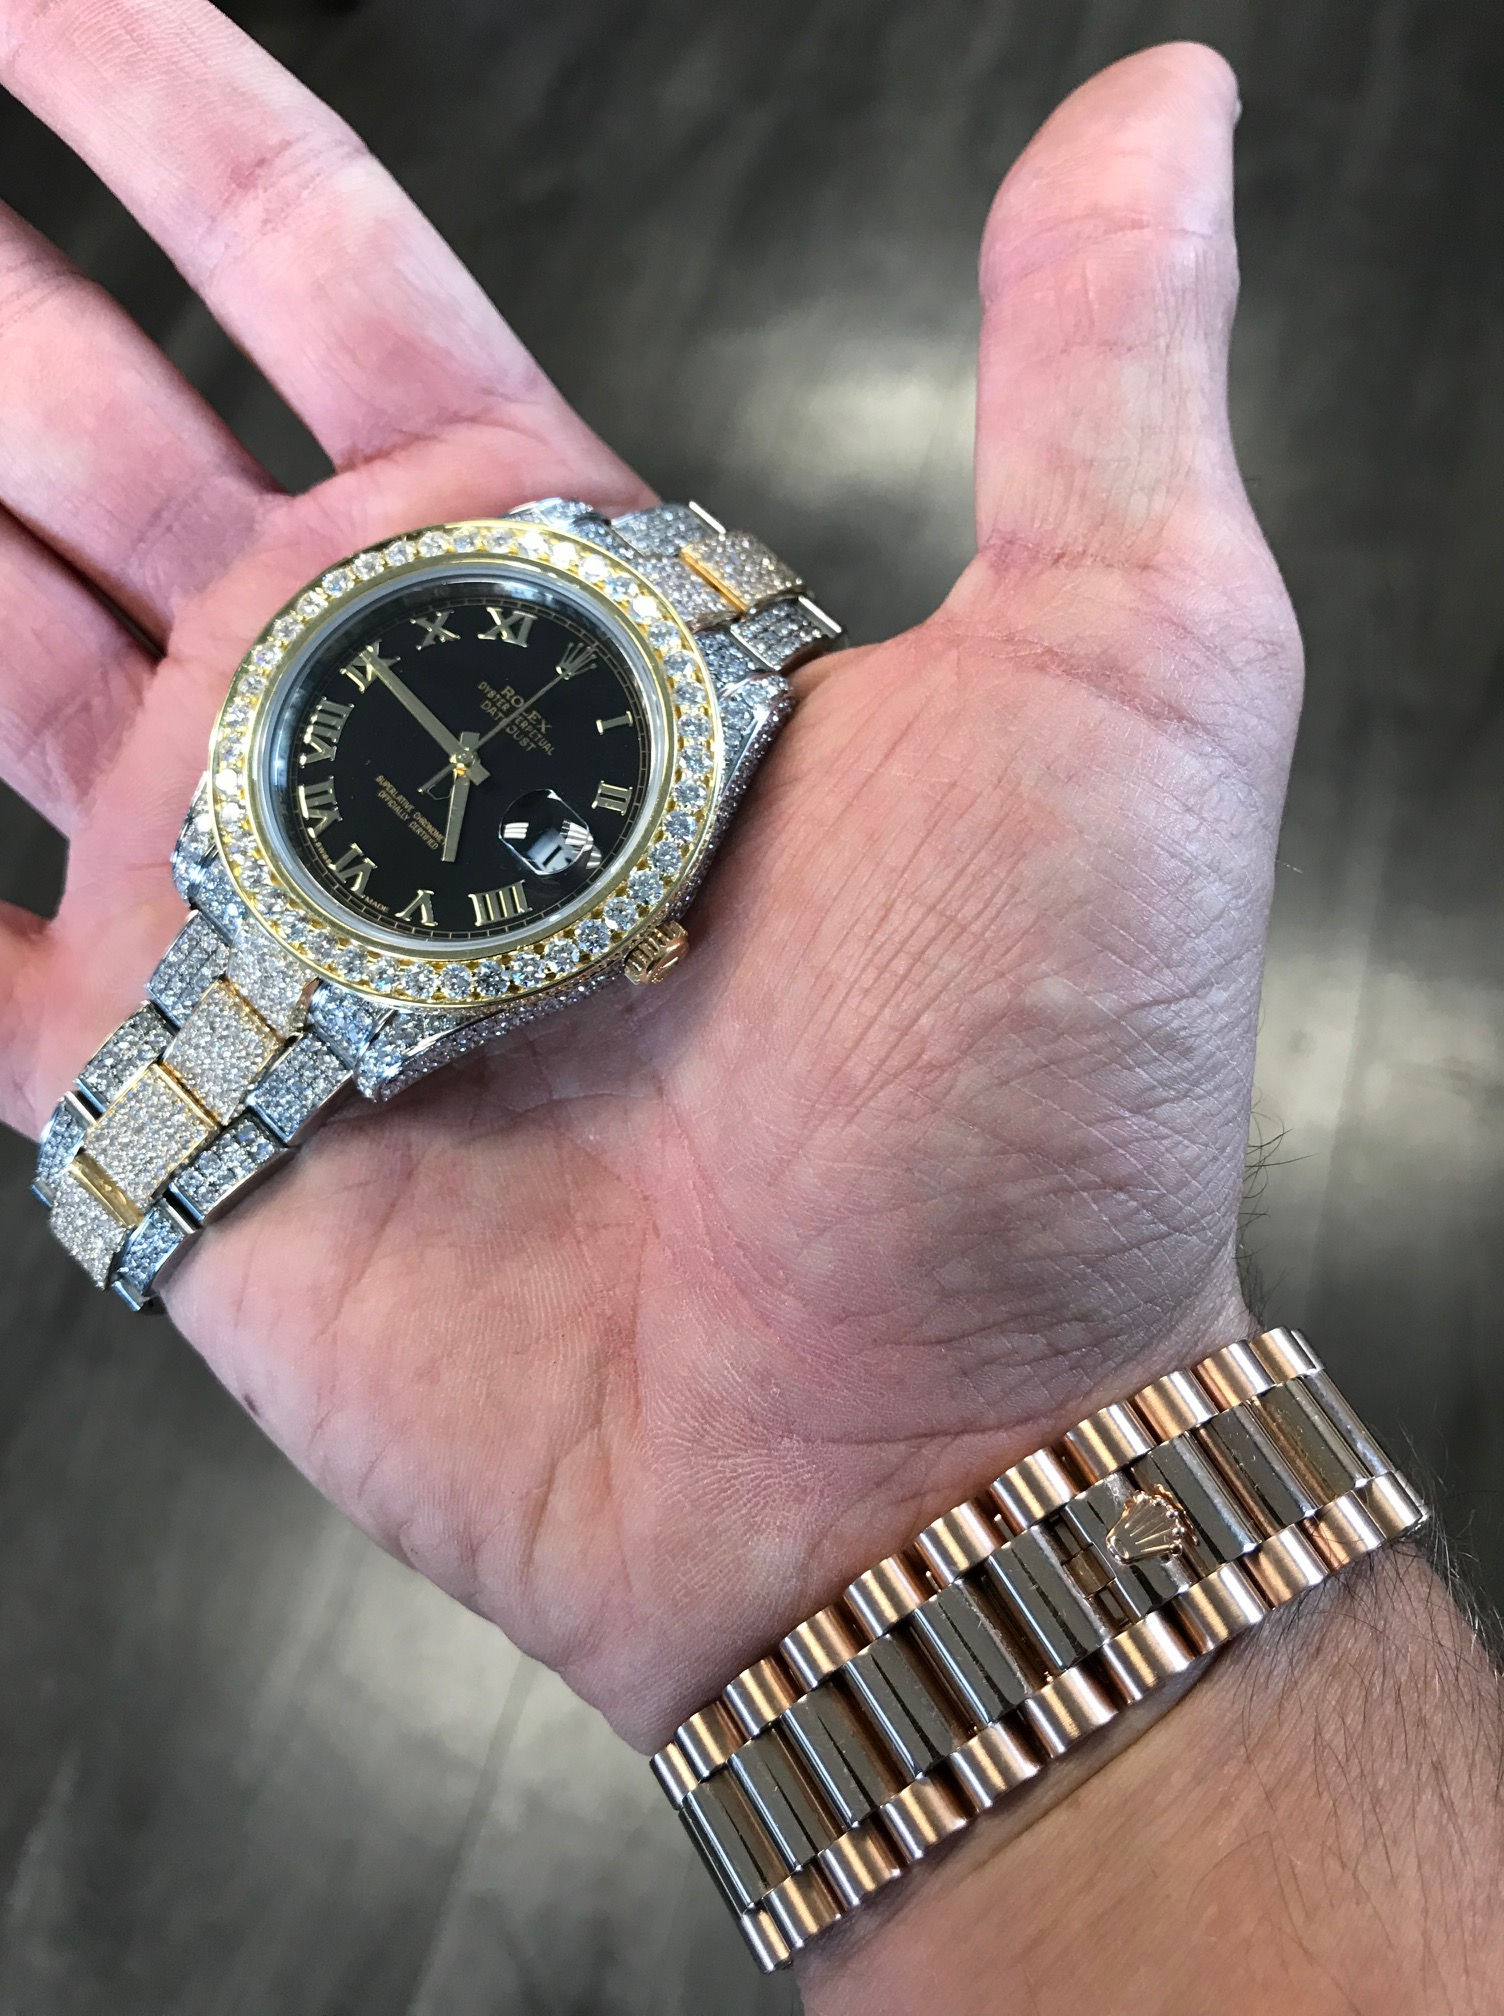 how much is my watch worth